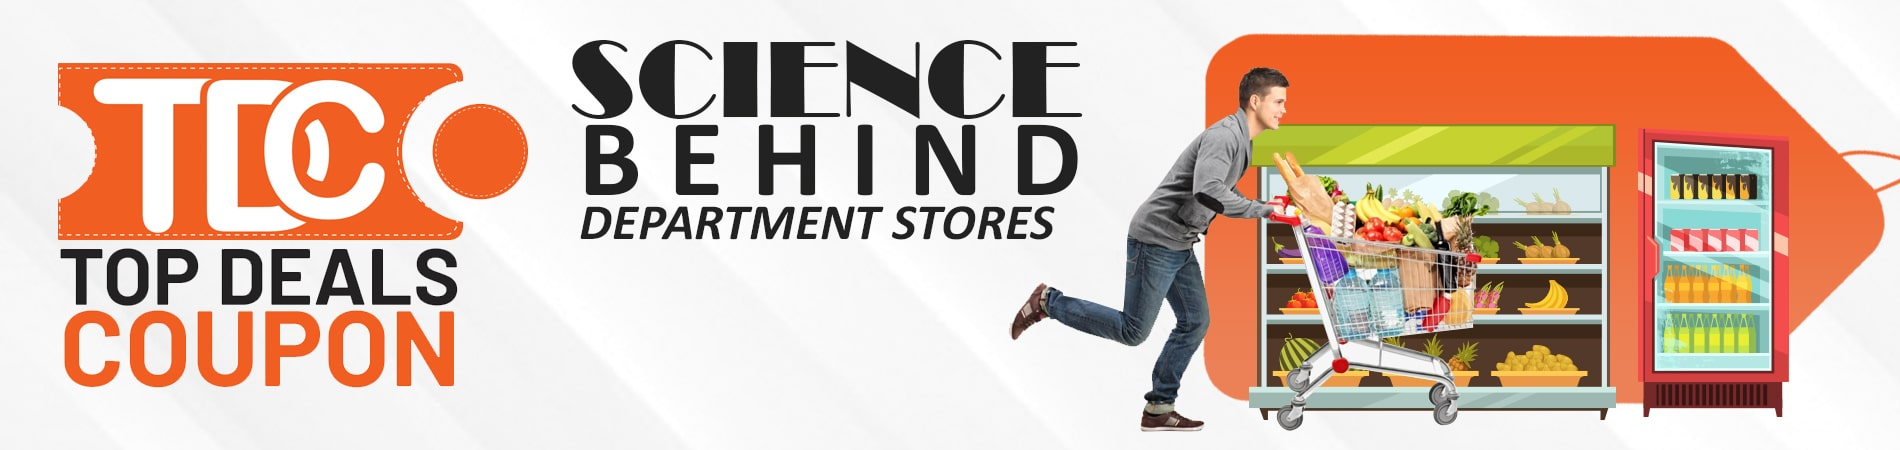 Science behind department stores Blog Banner Topdelscoupon